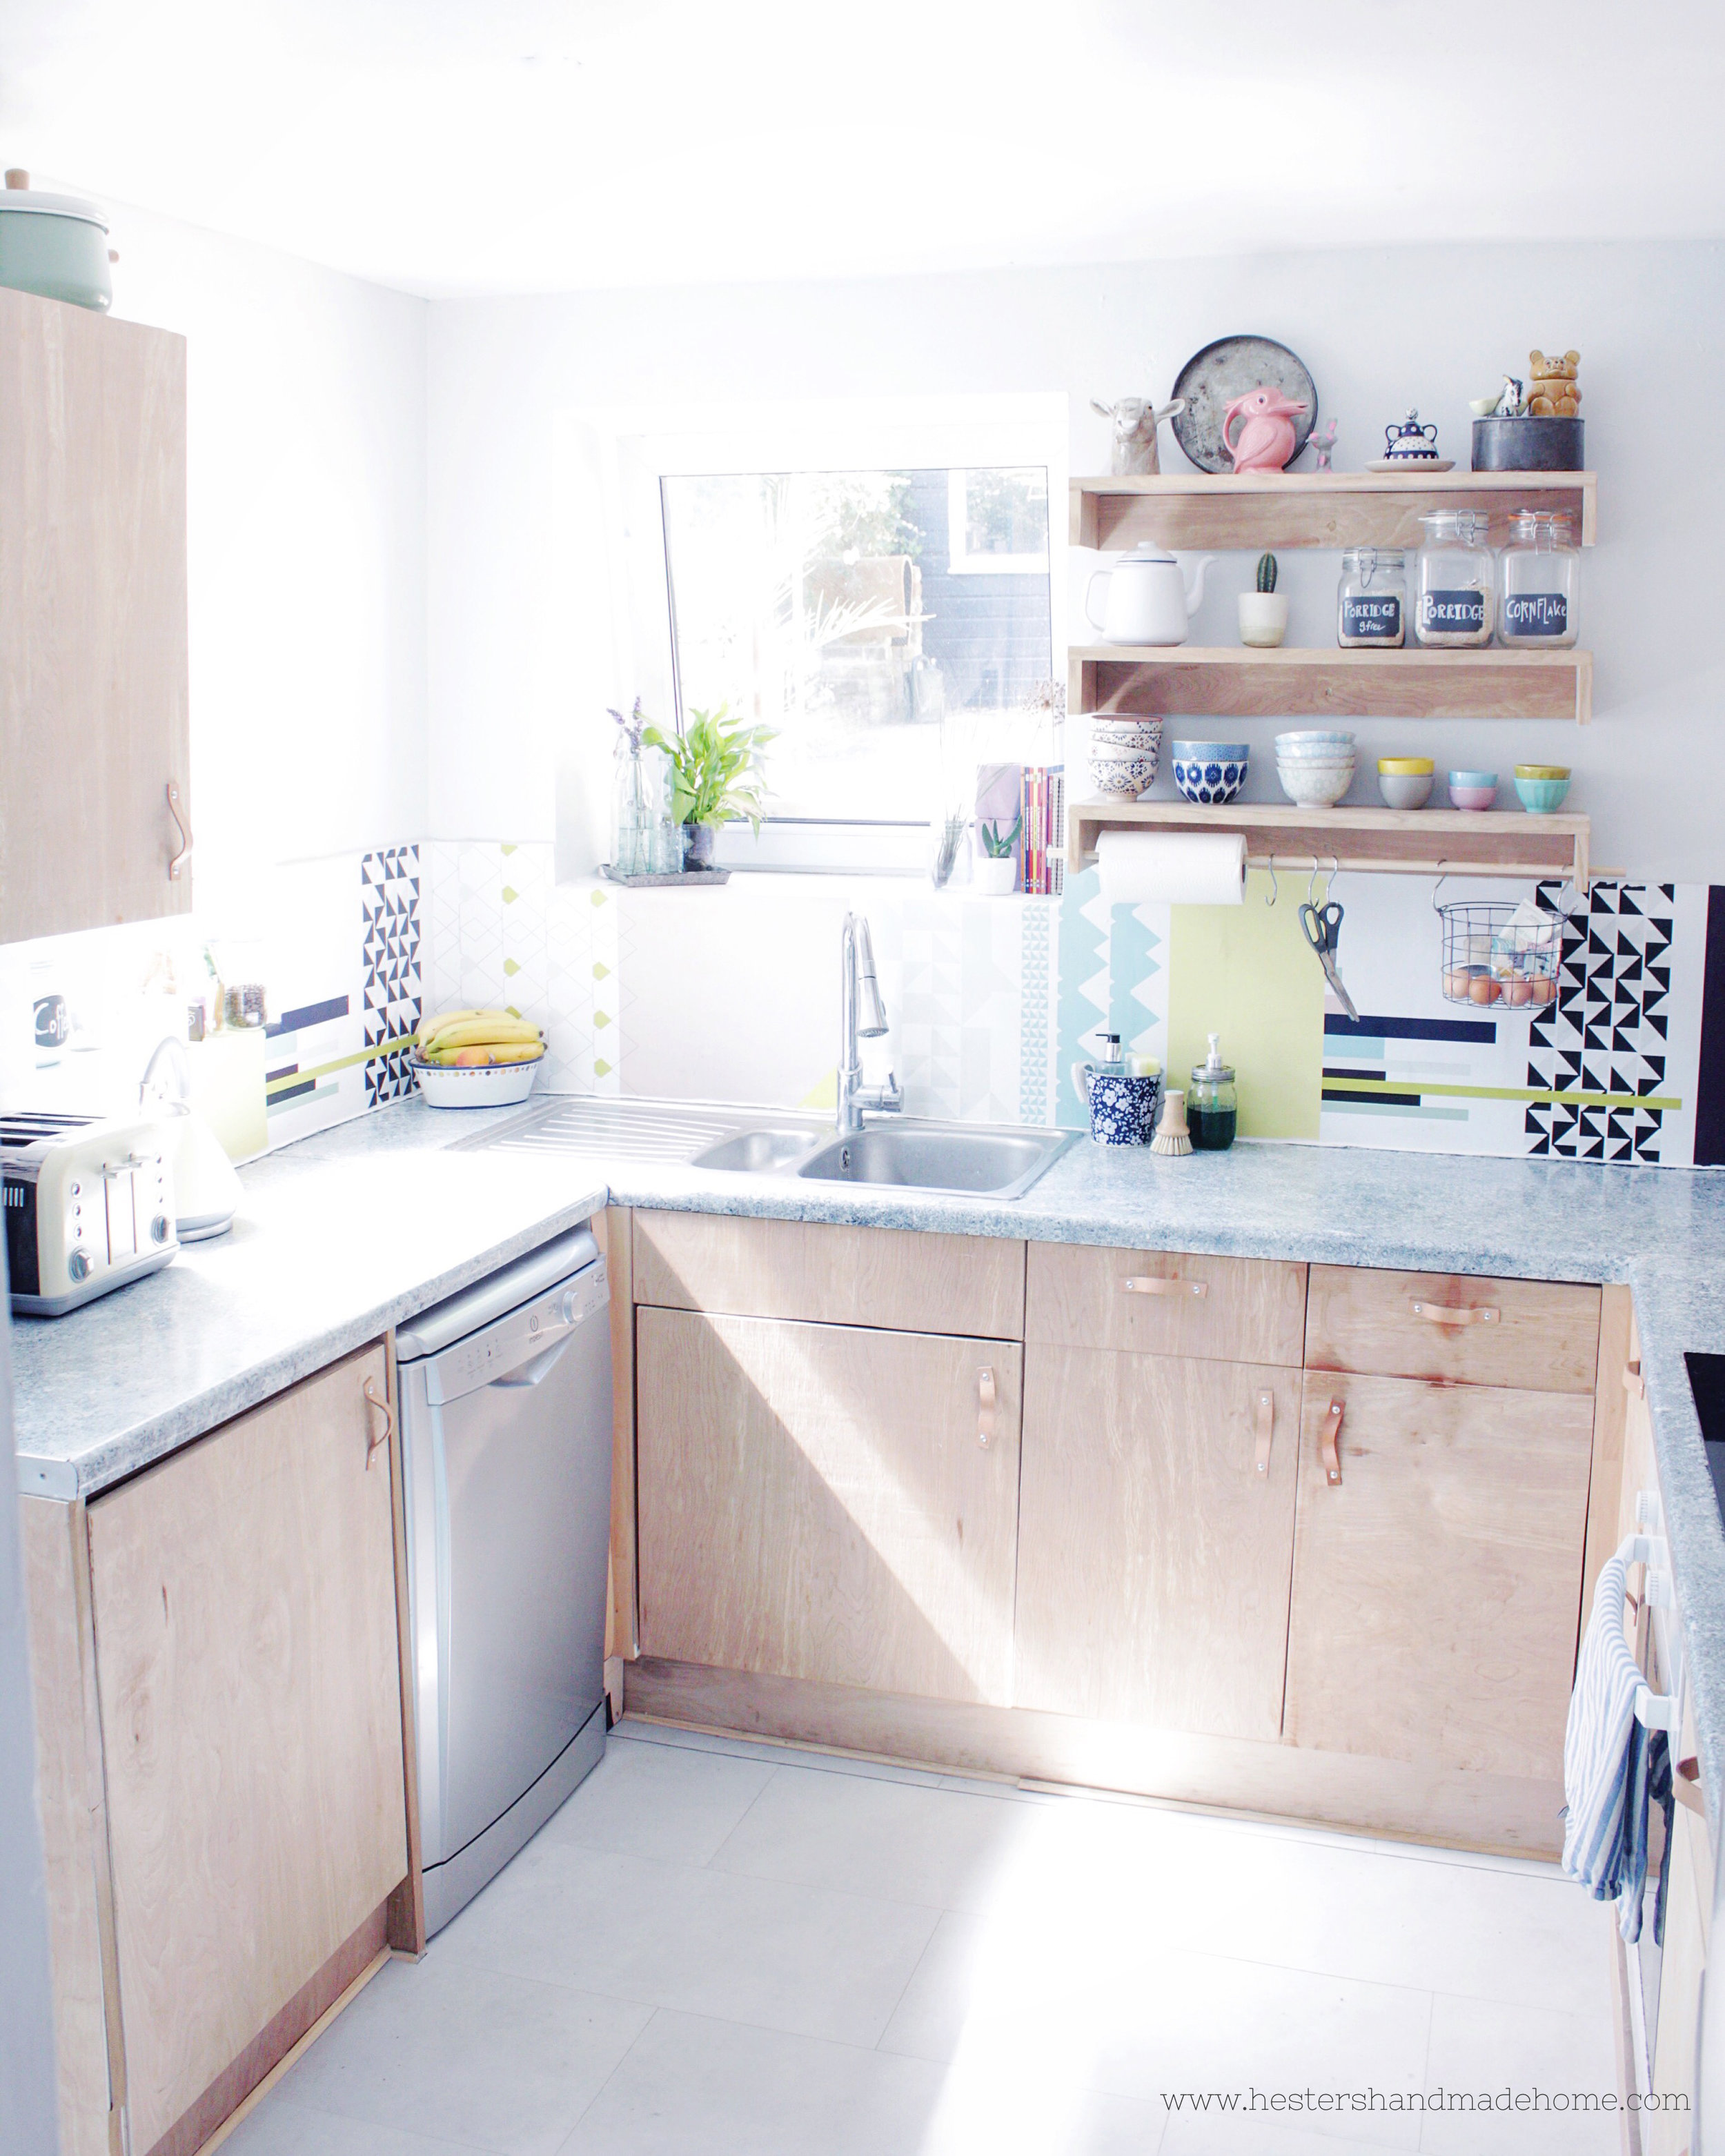 Nordic kitchen by www.hestershandmadehome.com